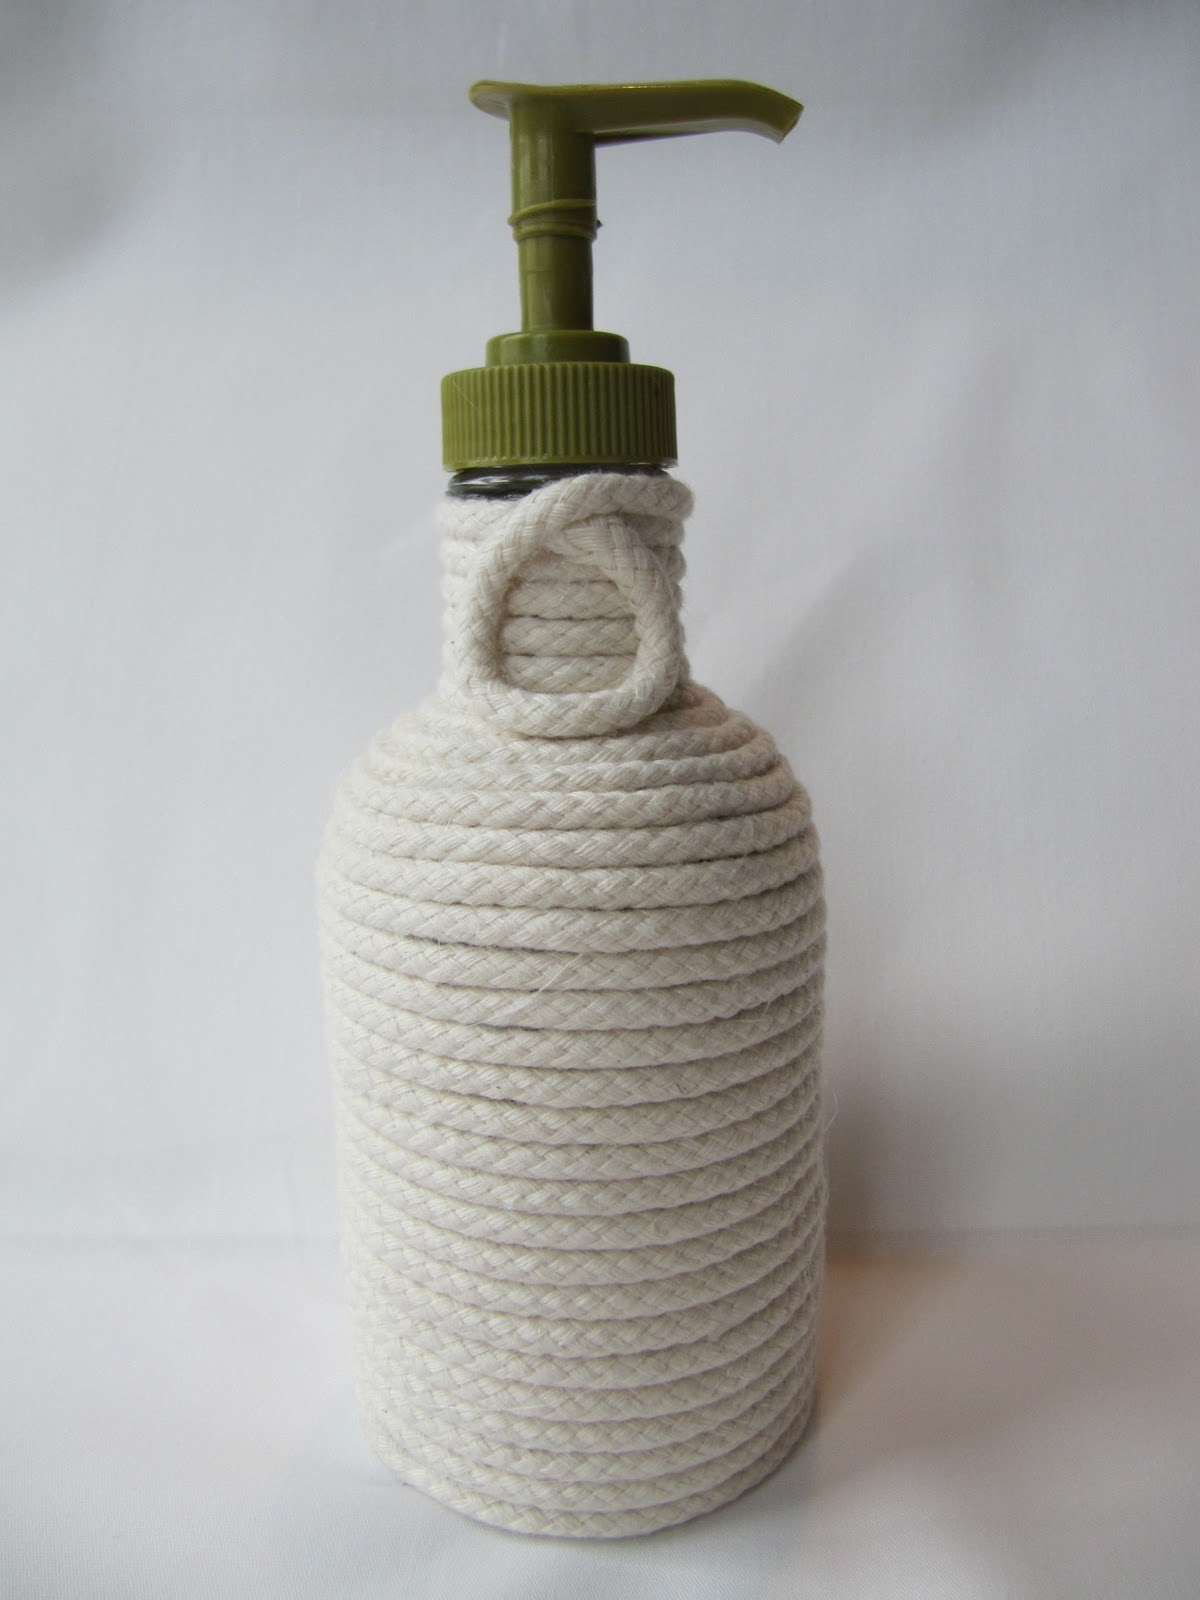 Hand Soap Bottle Holder Laurie 39s Projects Rope Soap Dispenser